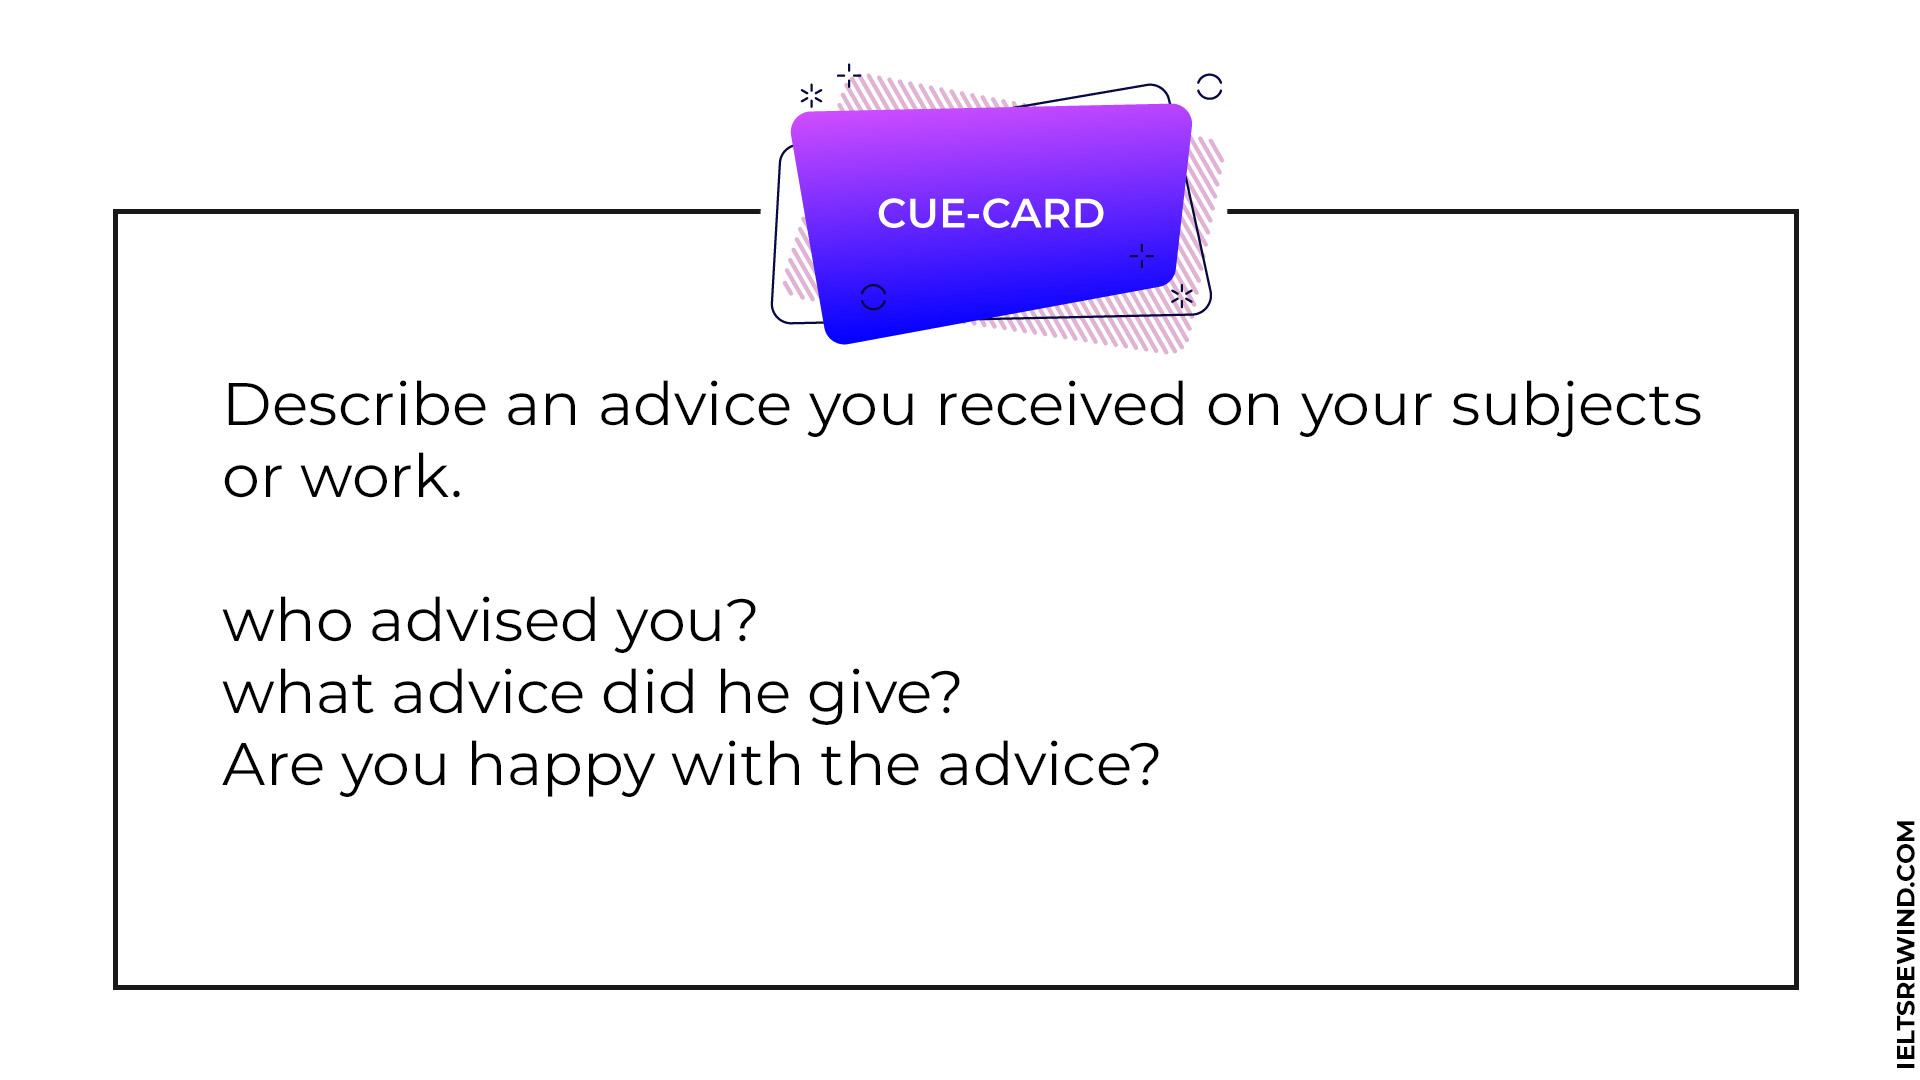 Describe an advice you received on your subjects or work.